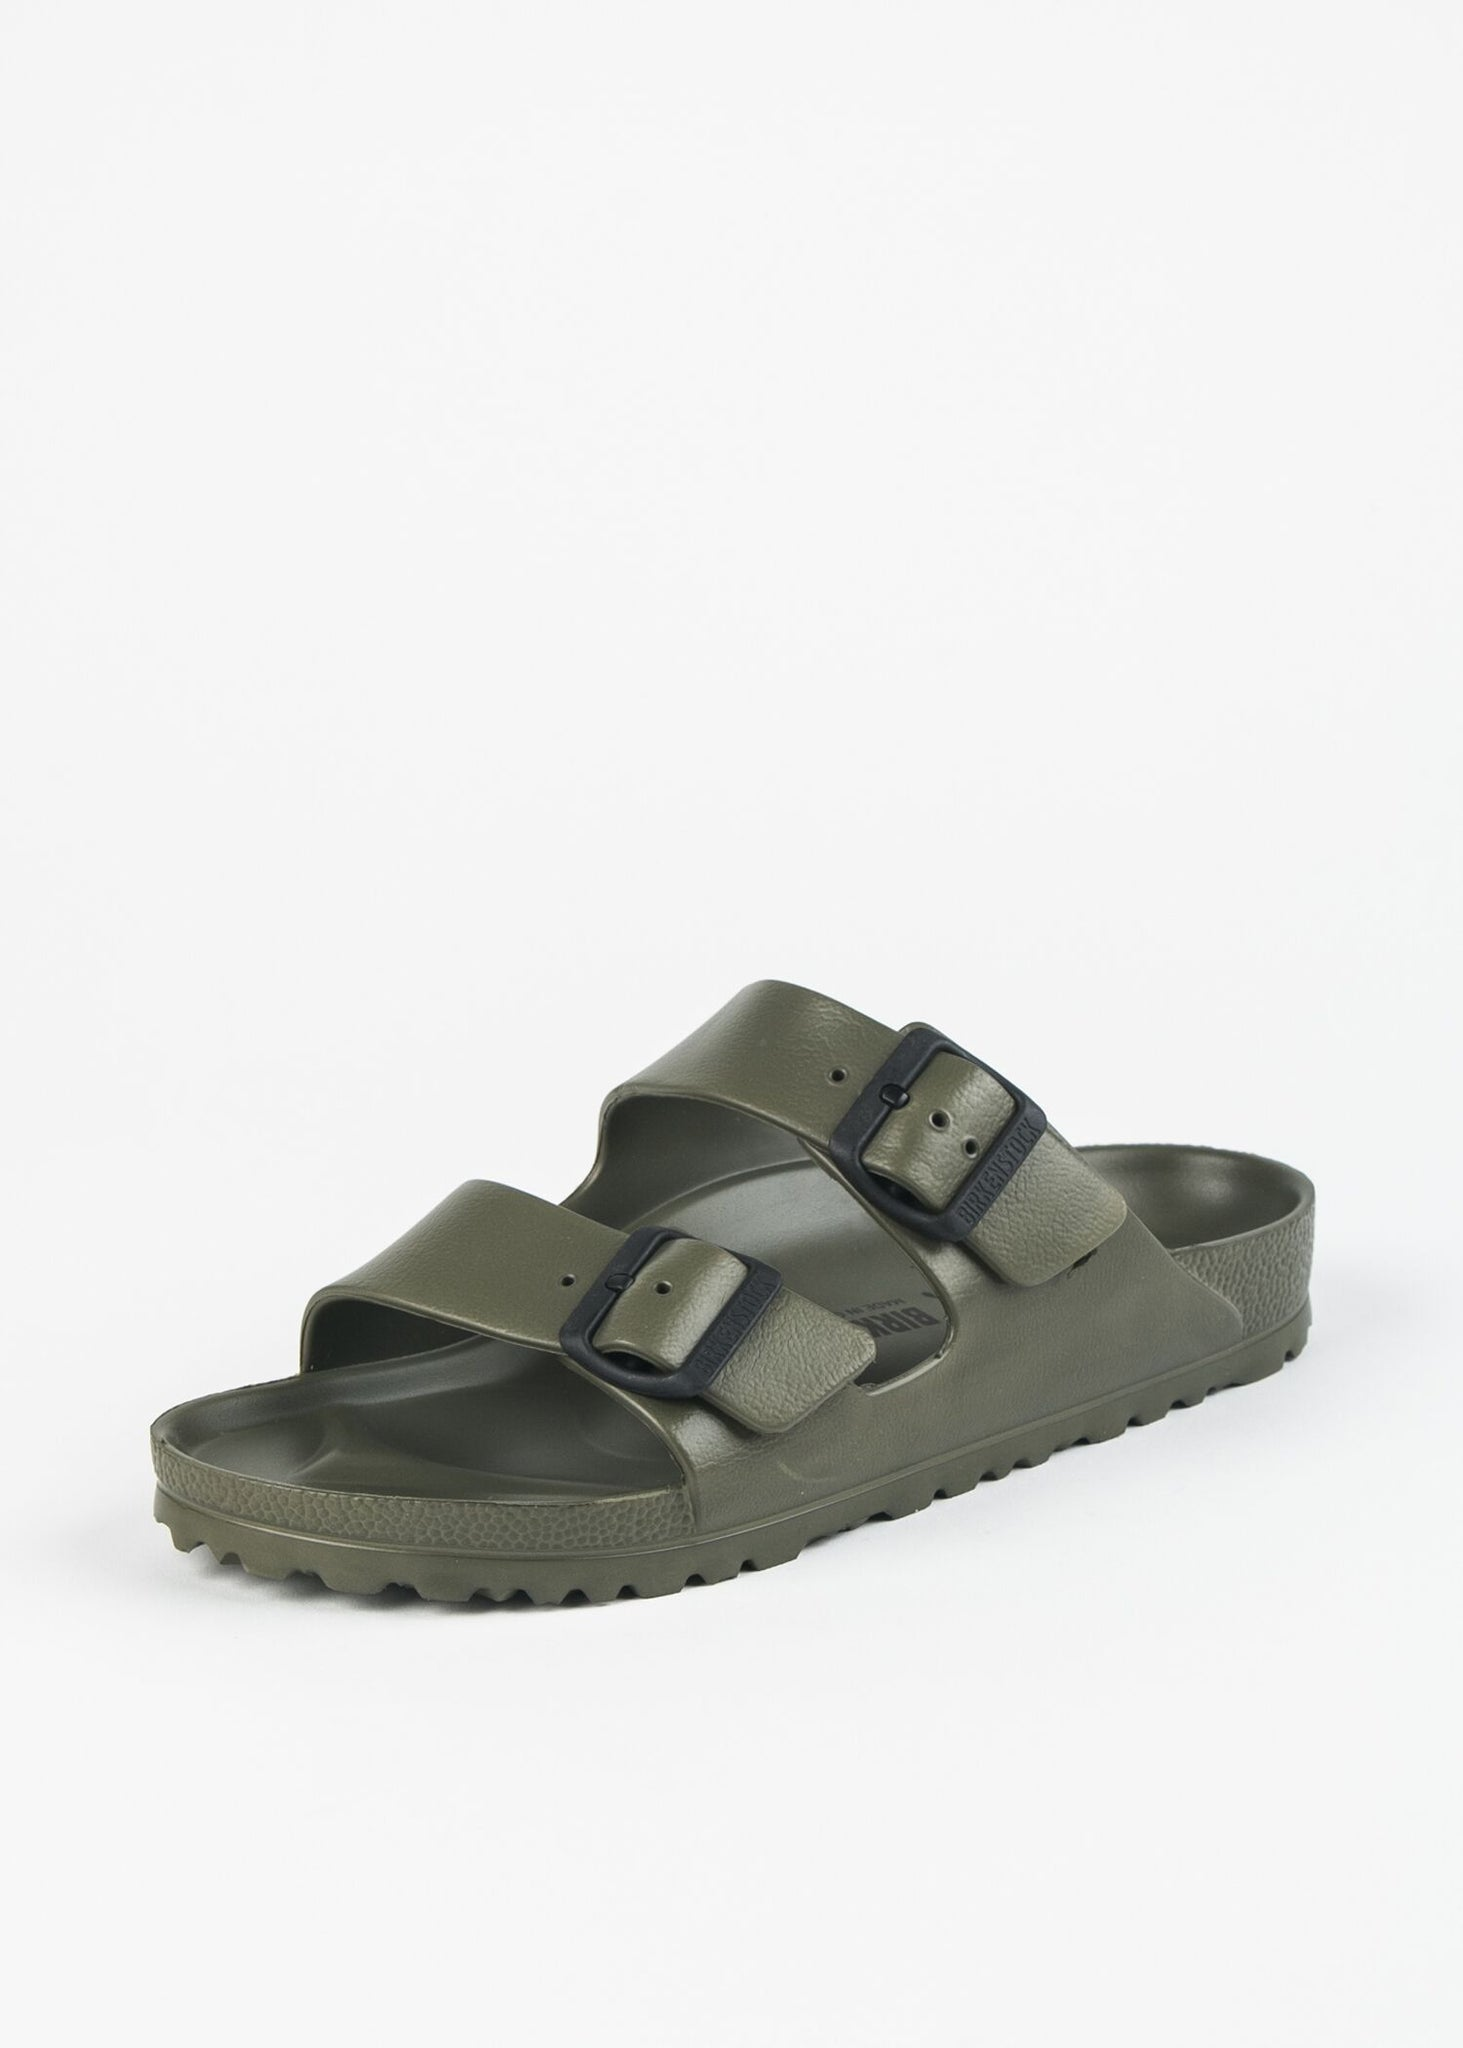 ARIZONA-EVA TWO STRAP SANDAL